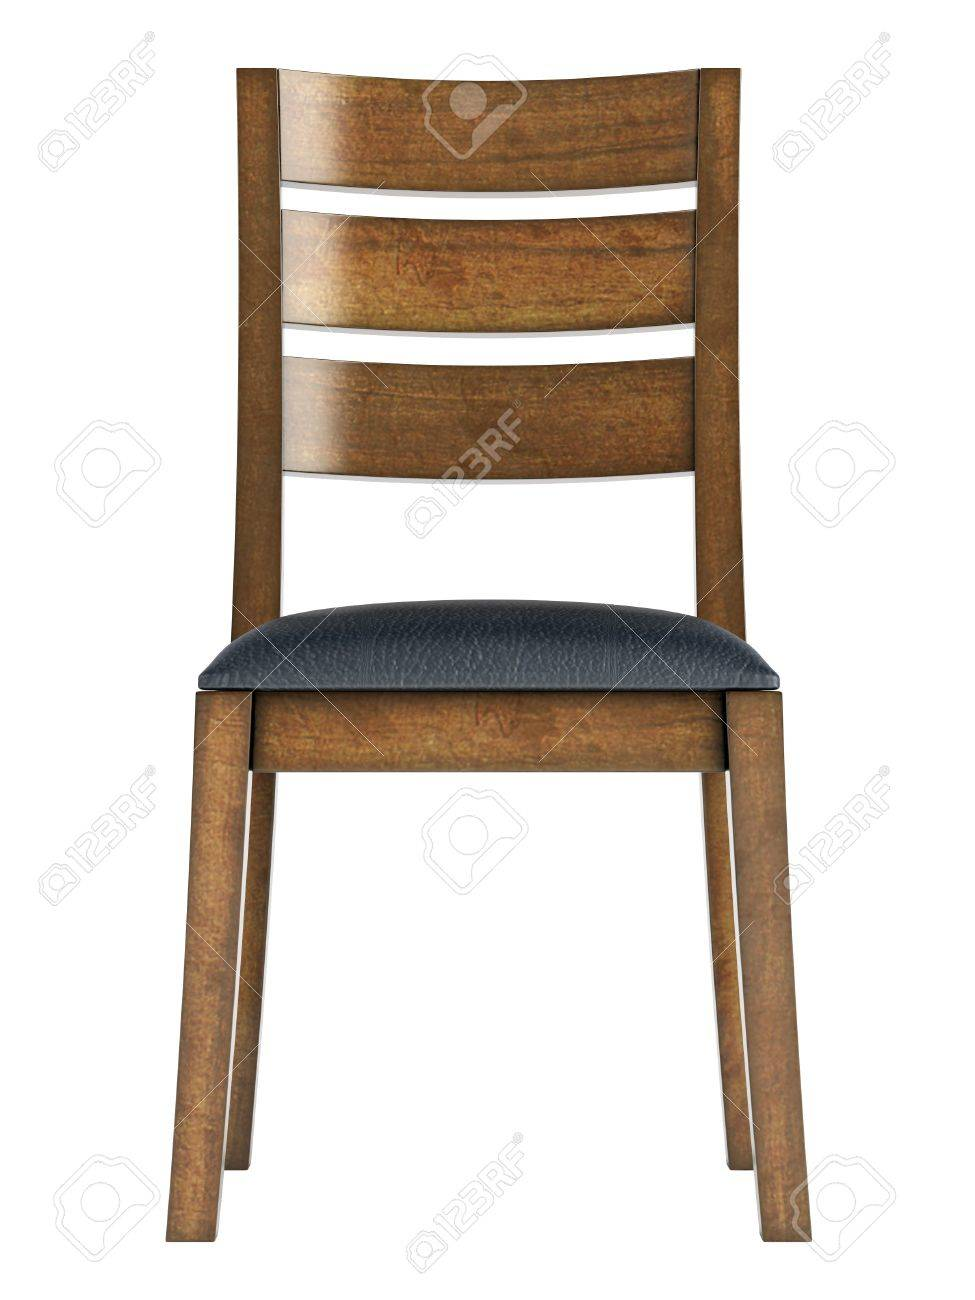 Antique Wooden Chair Isolated On White Background Stock Photo   14221933